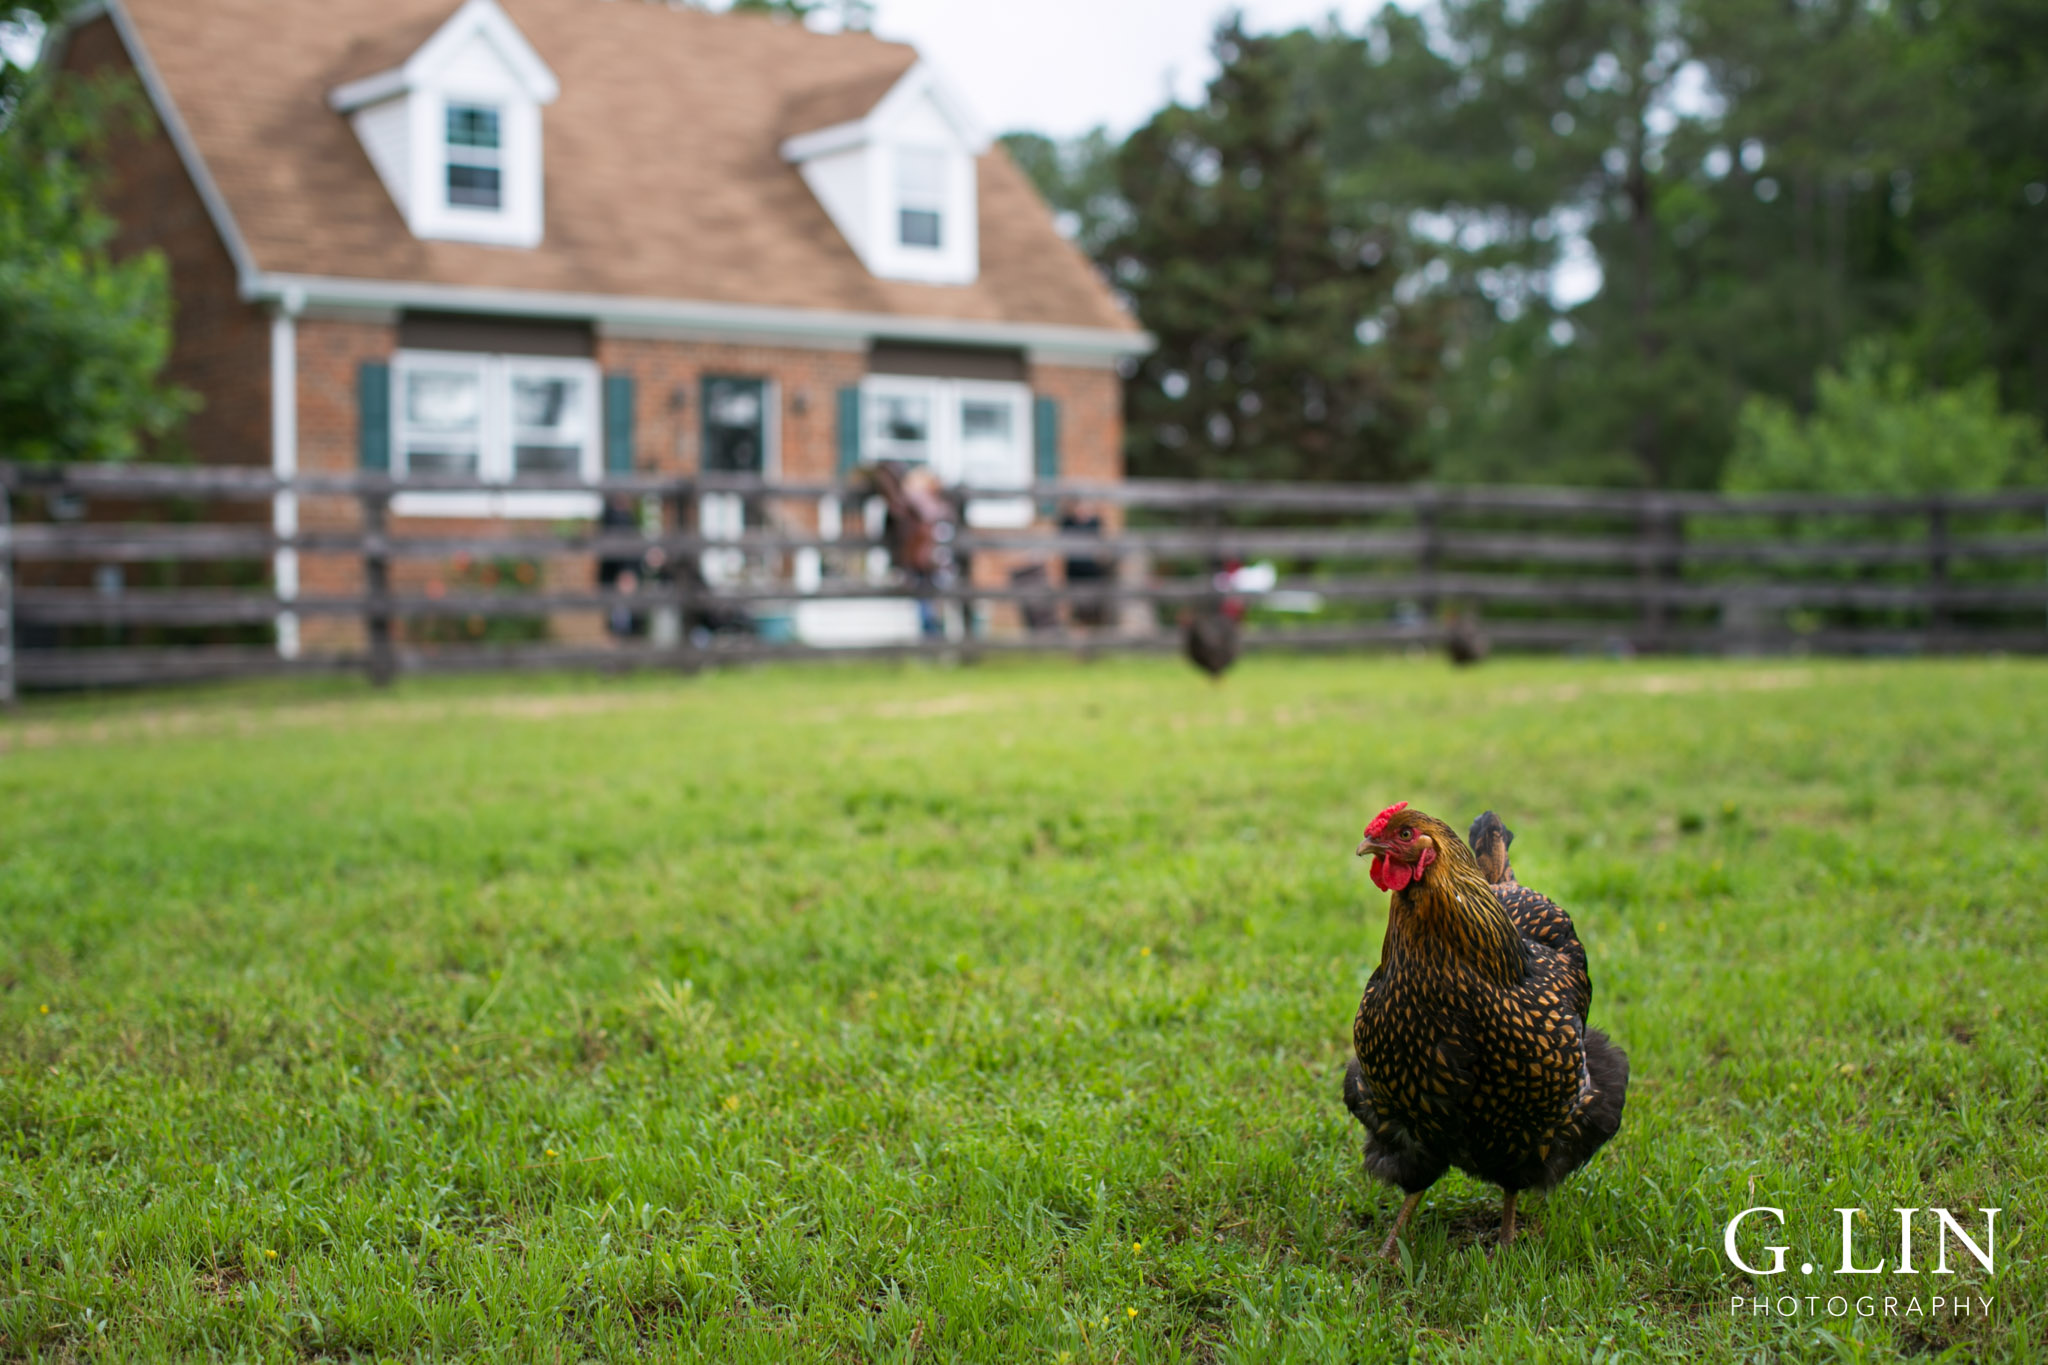 G. Lin Photography | Raleigh Event Photographer | Chicken on the field walking around